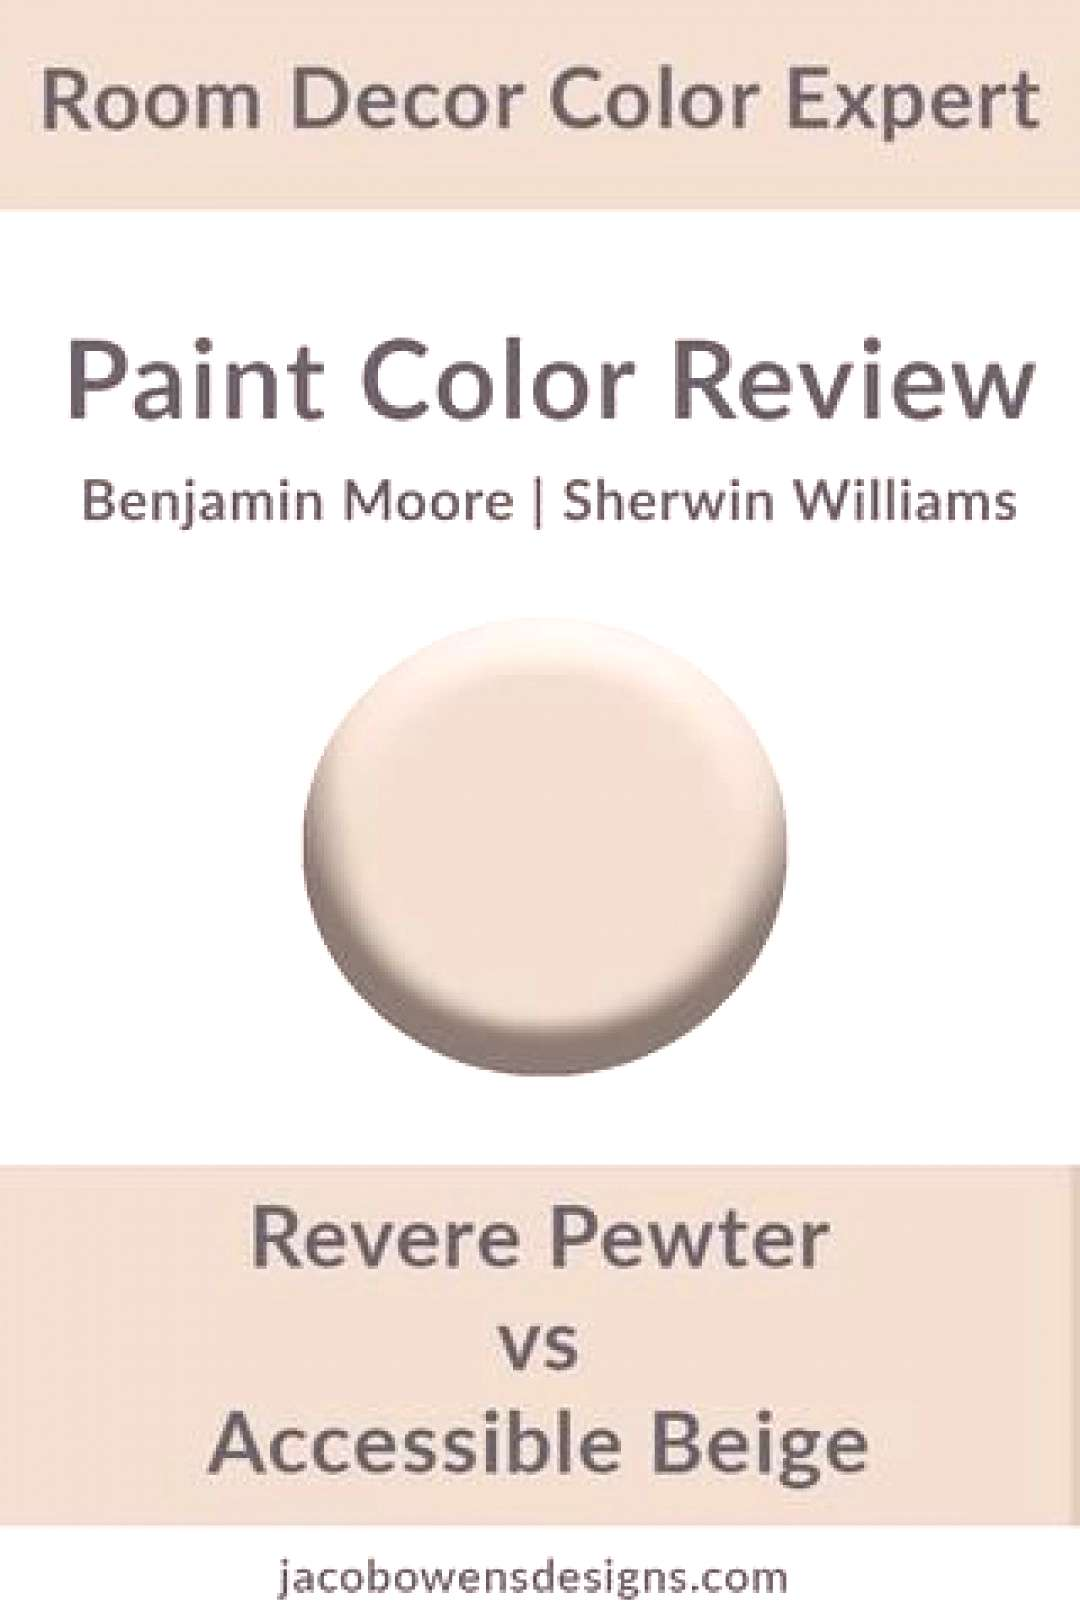 Benjamin Moore Revere Pewter vs Sherwin Williams Accessible Beige Color Review